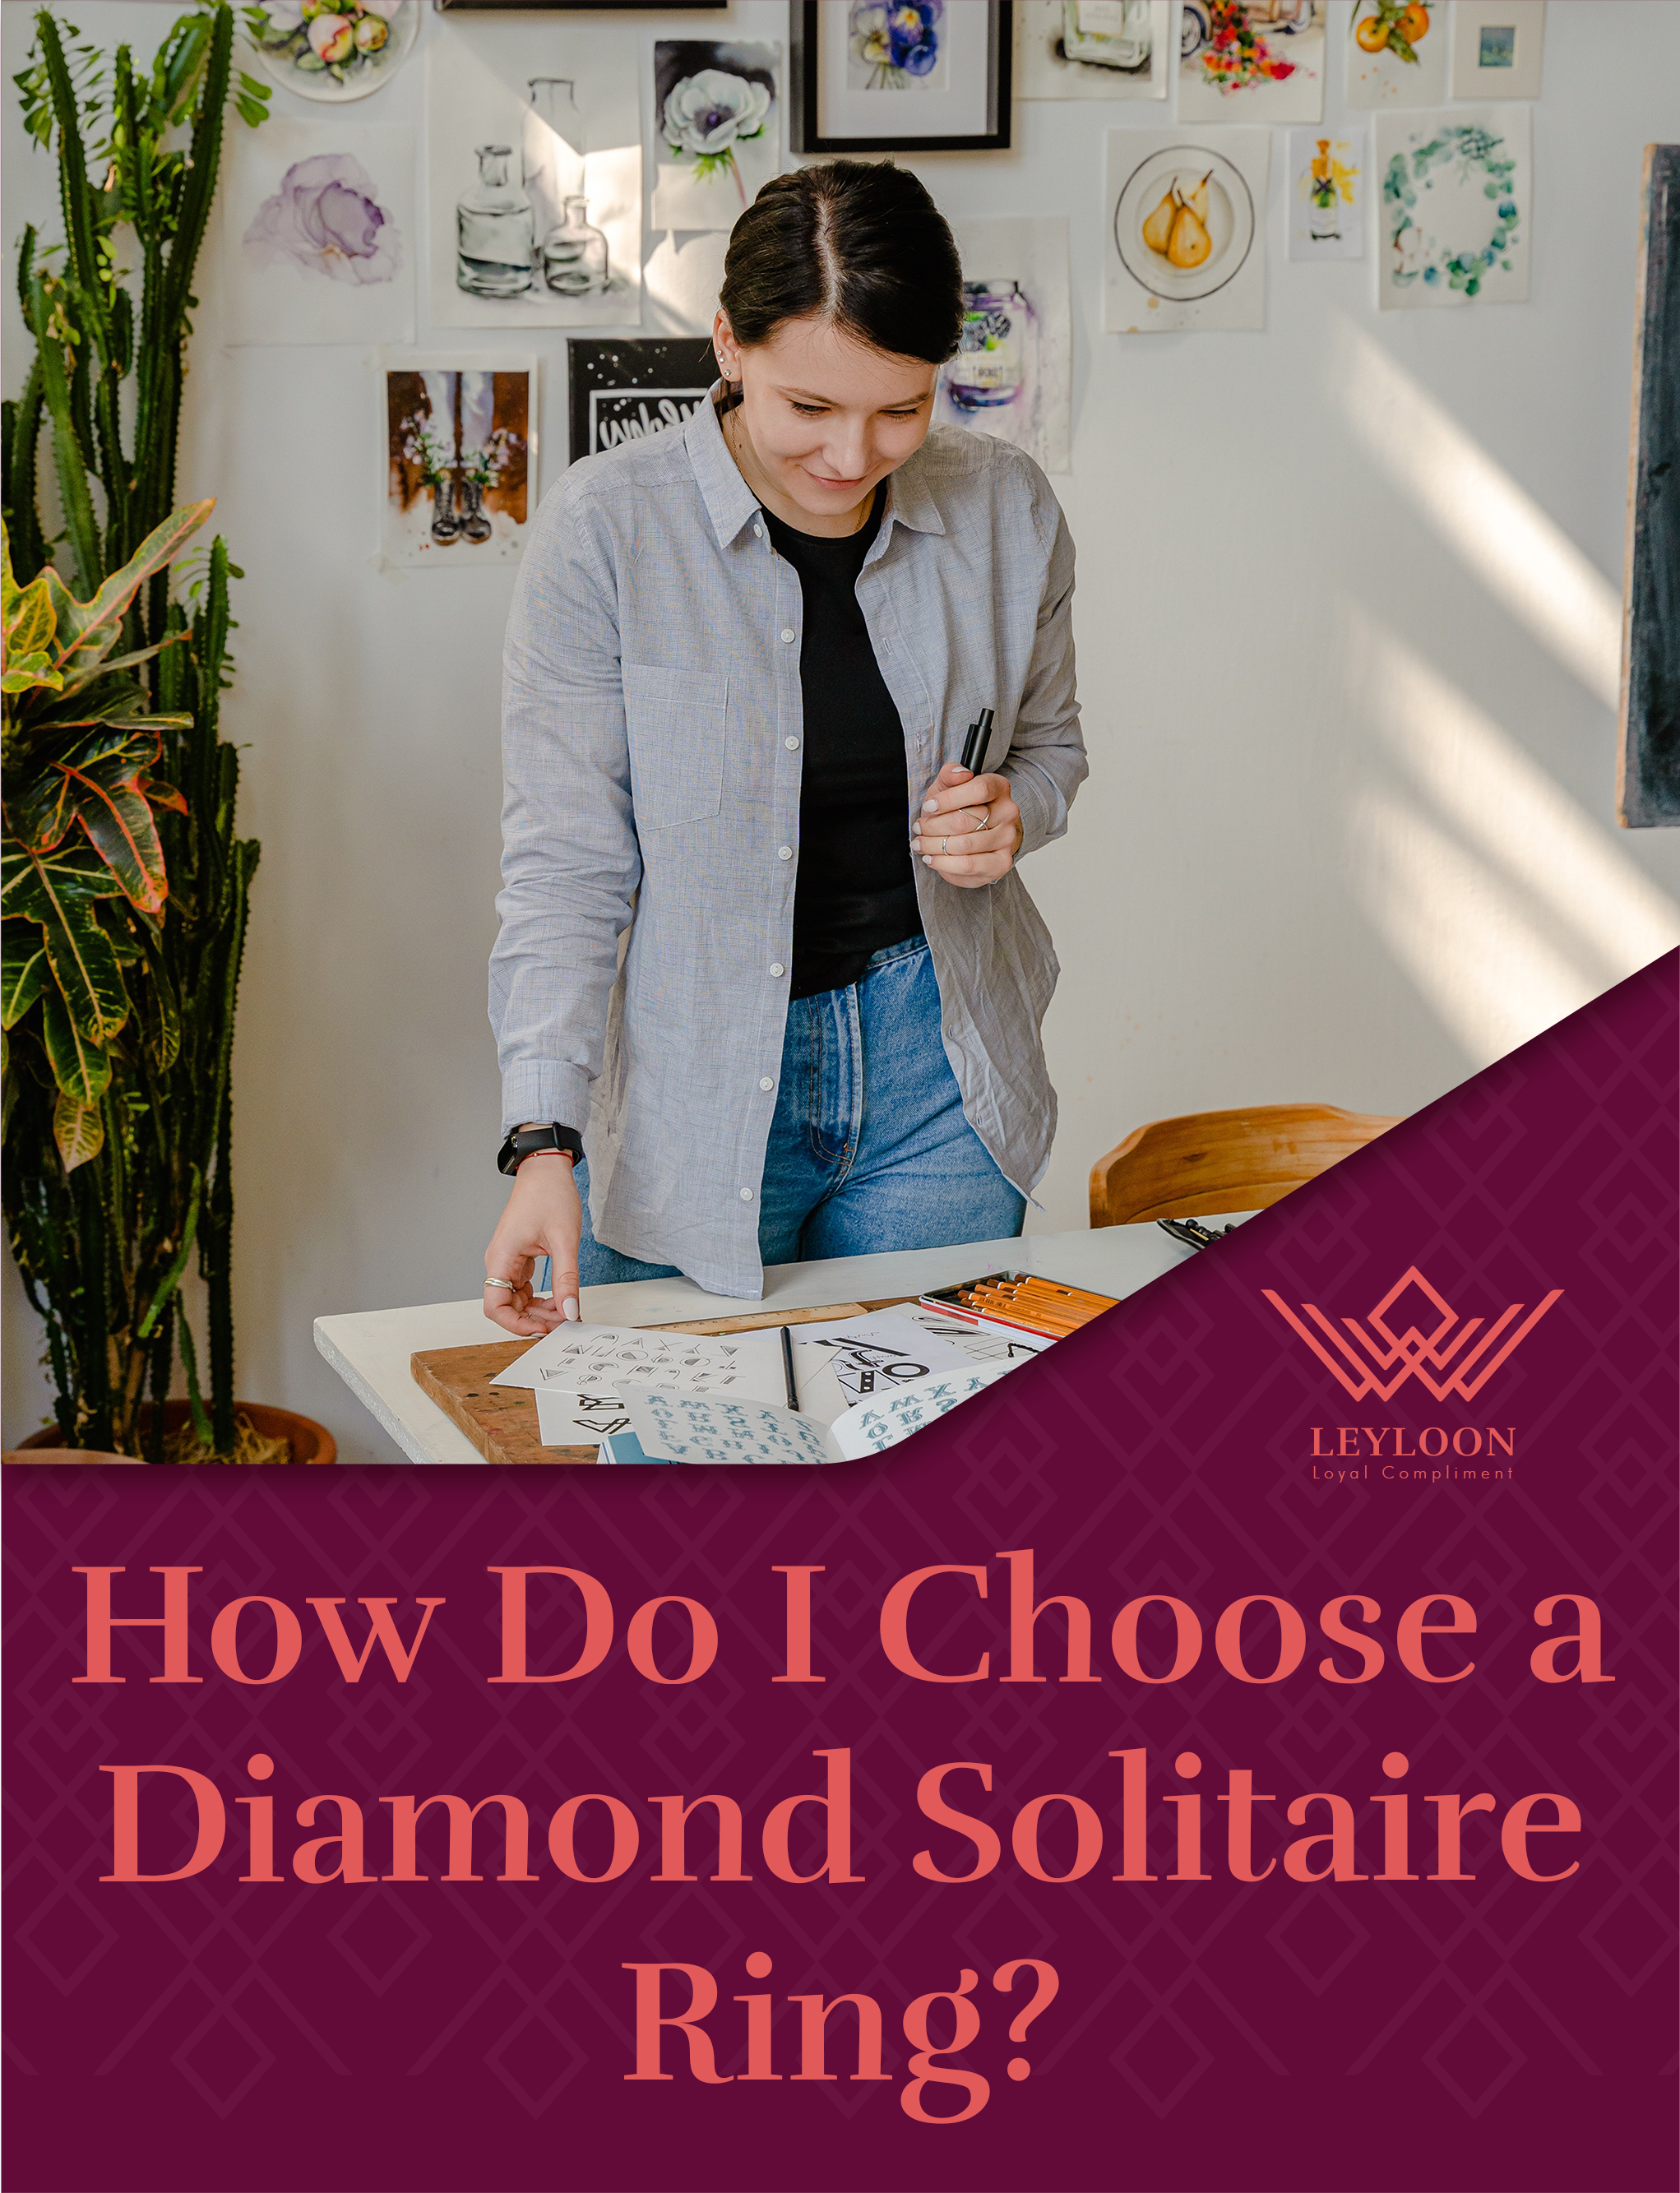 How Do I Choose a Diamond Solitaire Ring?